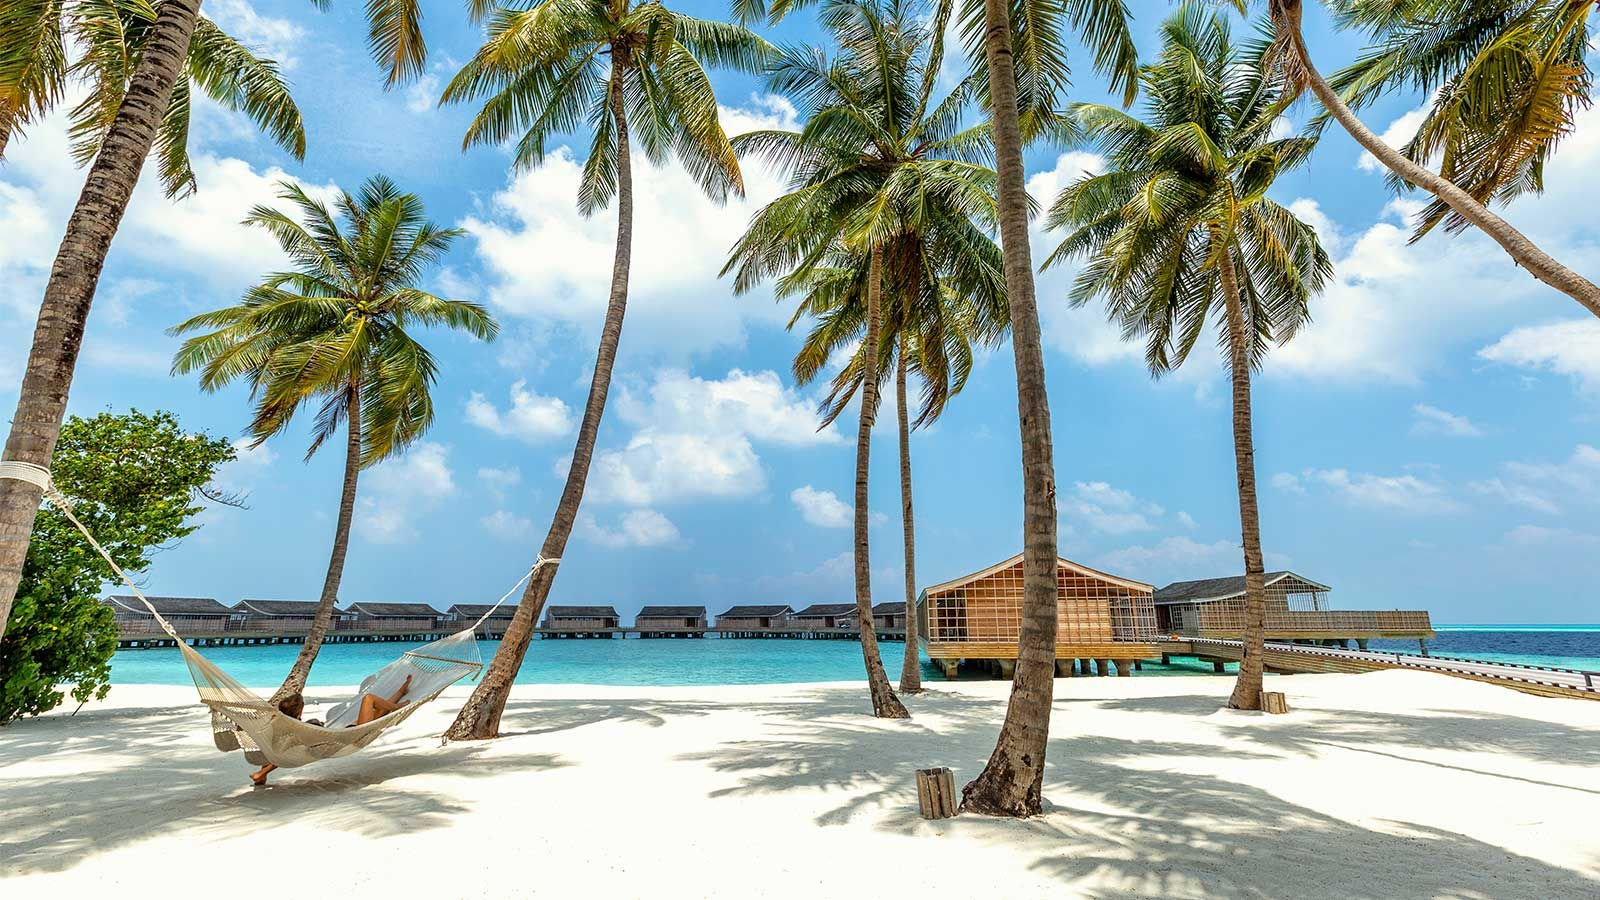 Palm trees at Kudadoo Maldives Private Island